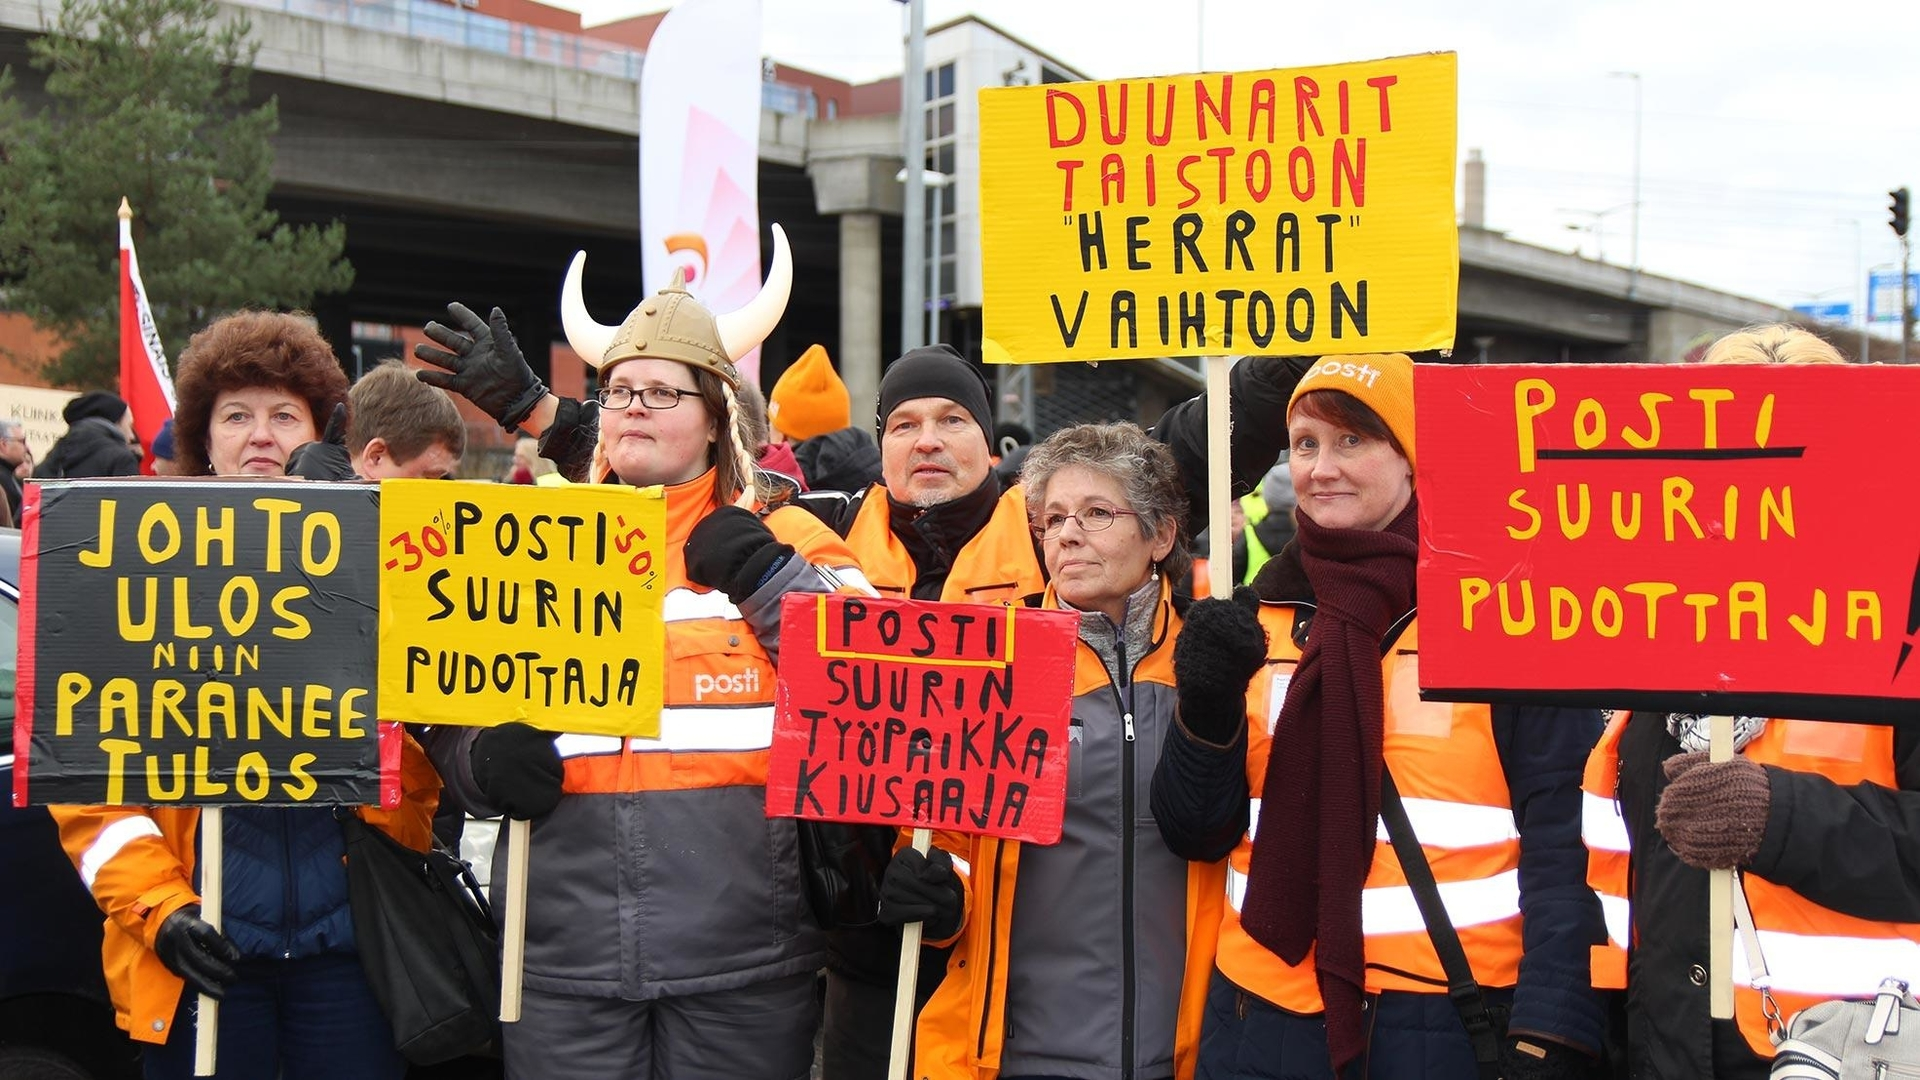 Finland postal workers